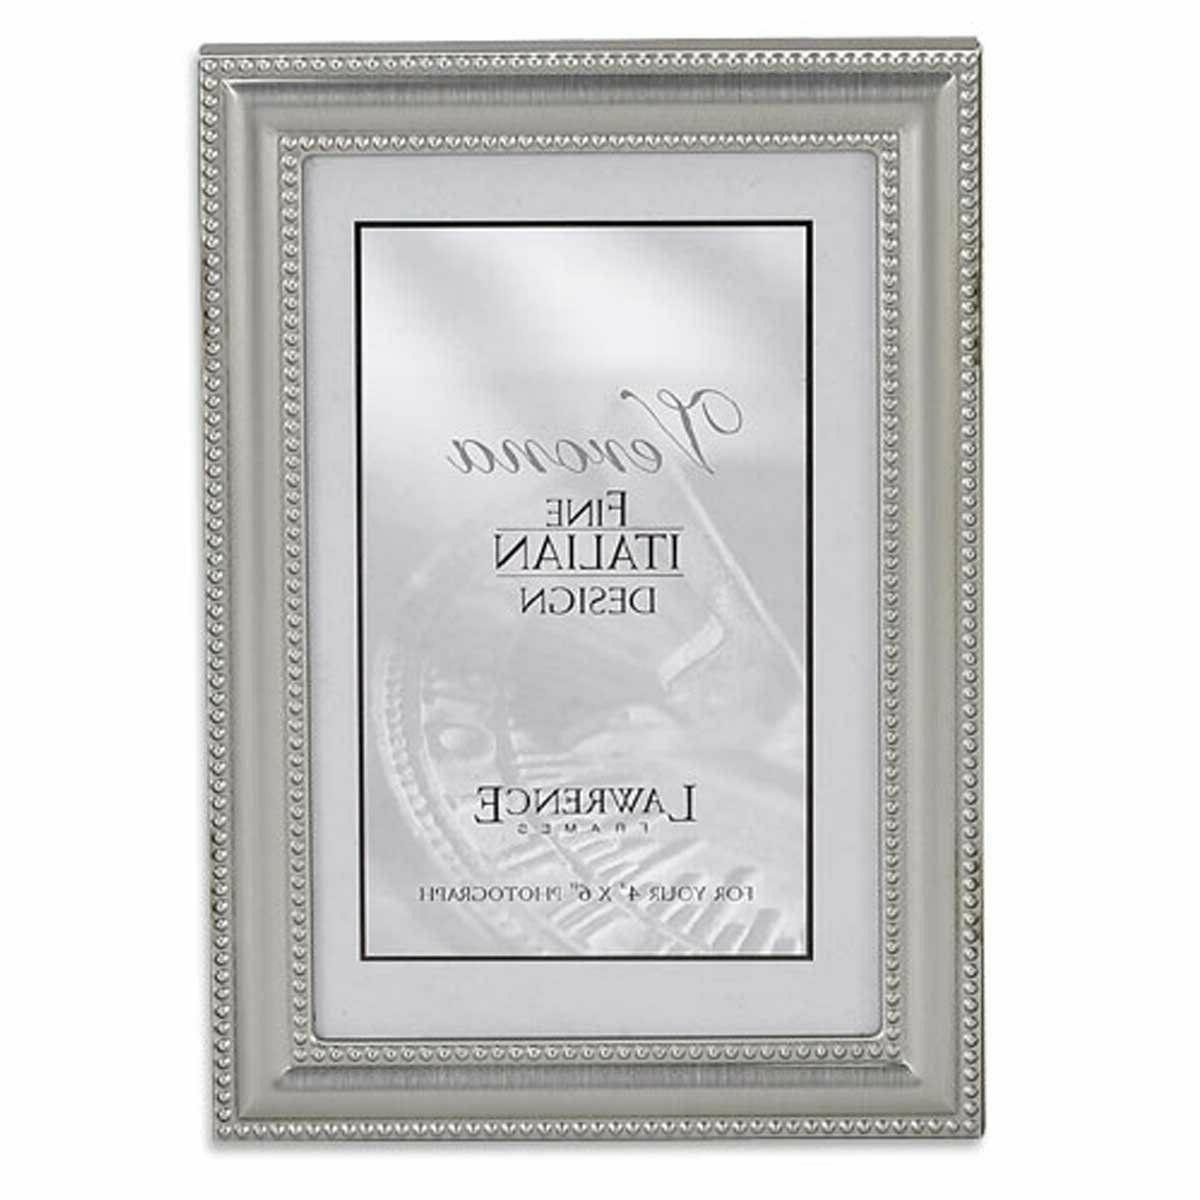 4 x 6 Picture Frame in Brushed Pewter with Delicate Beading